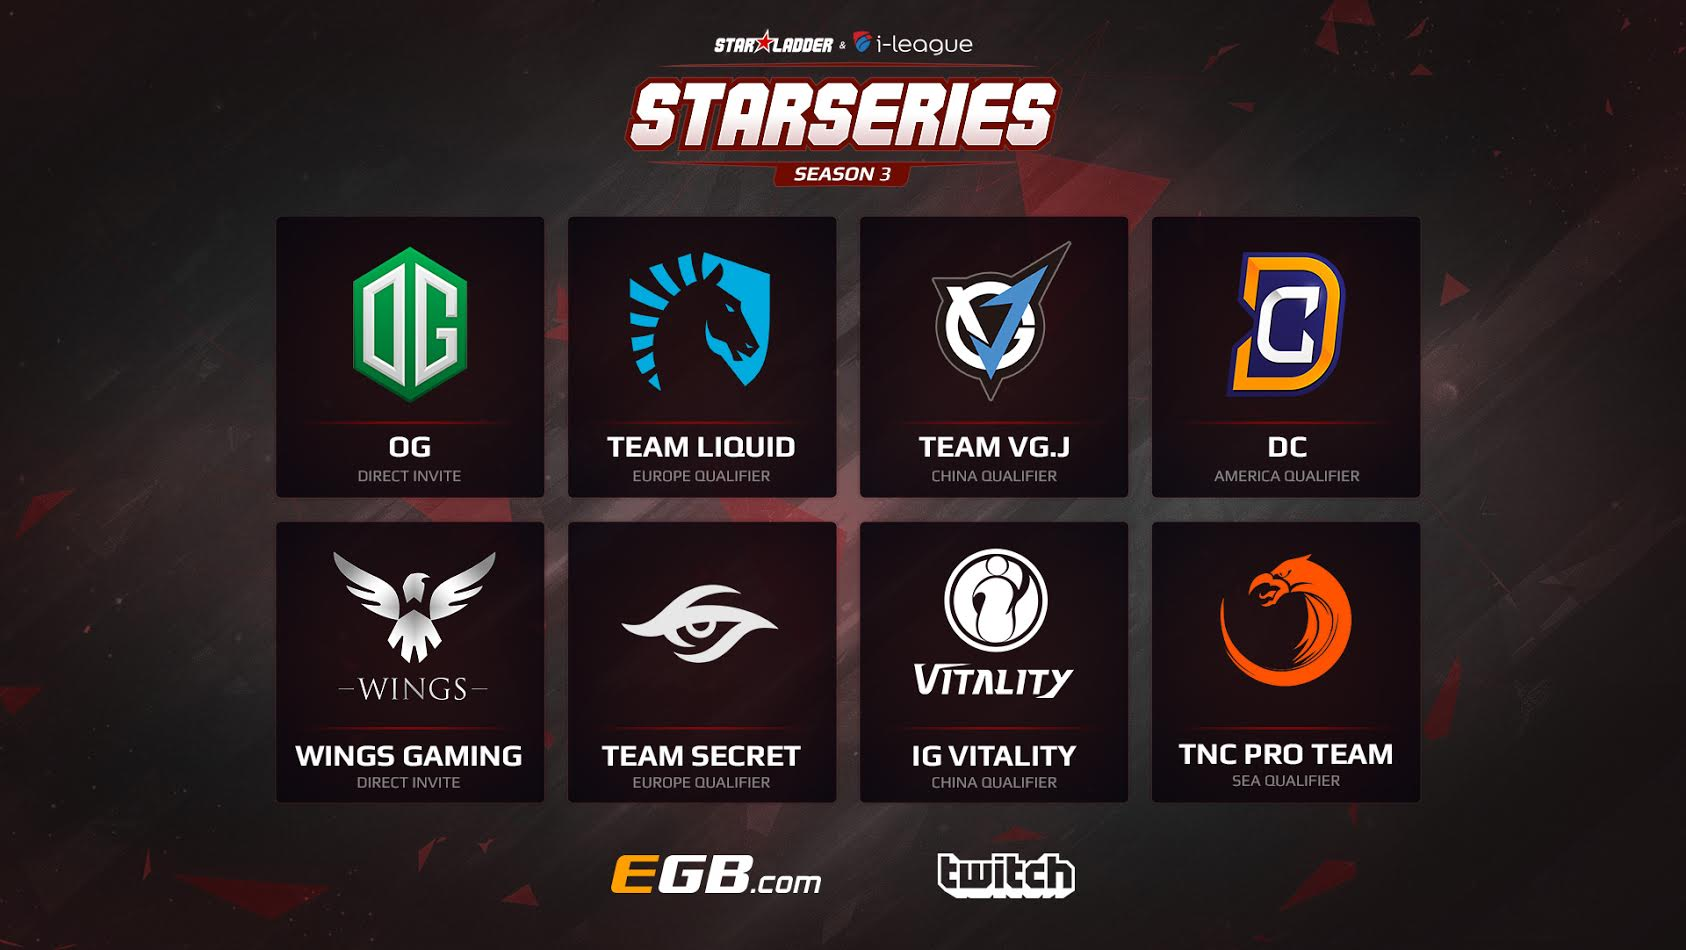 Dota 2 LAN-finals participants at SL i-League StarSeries Season 3